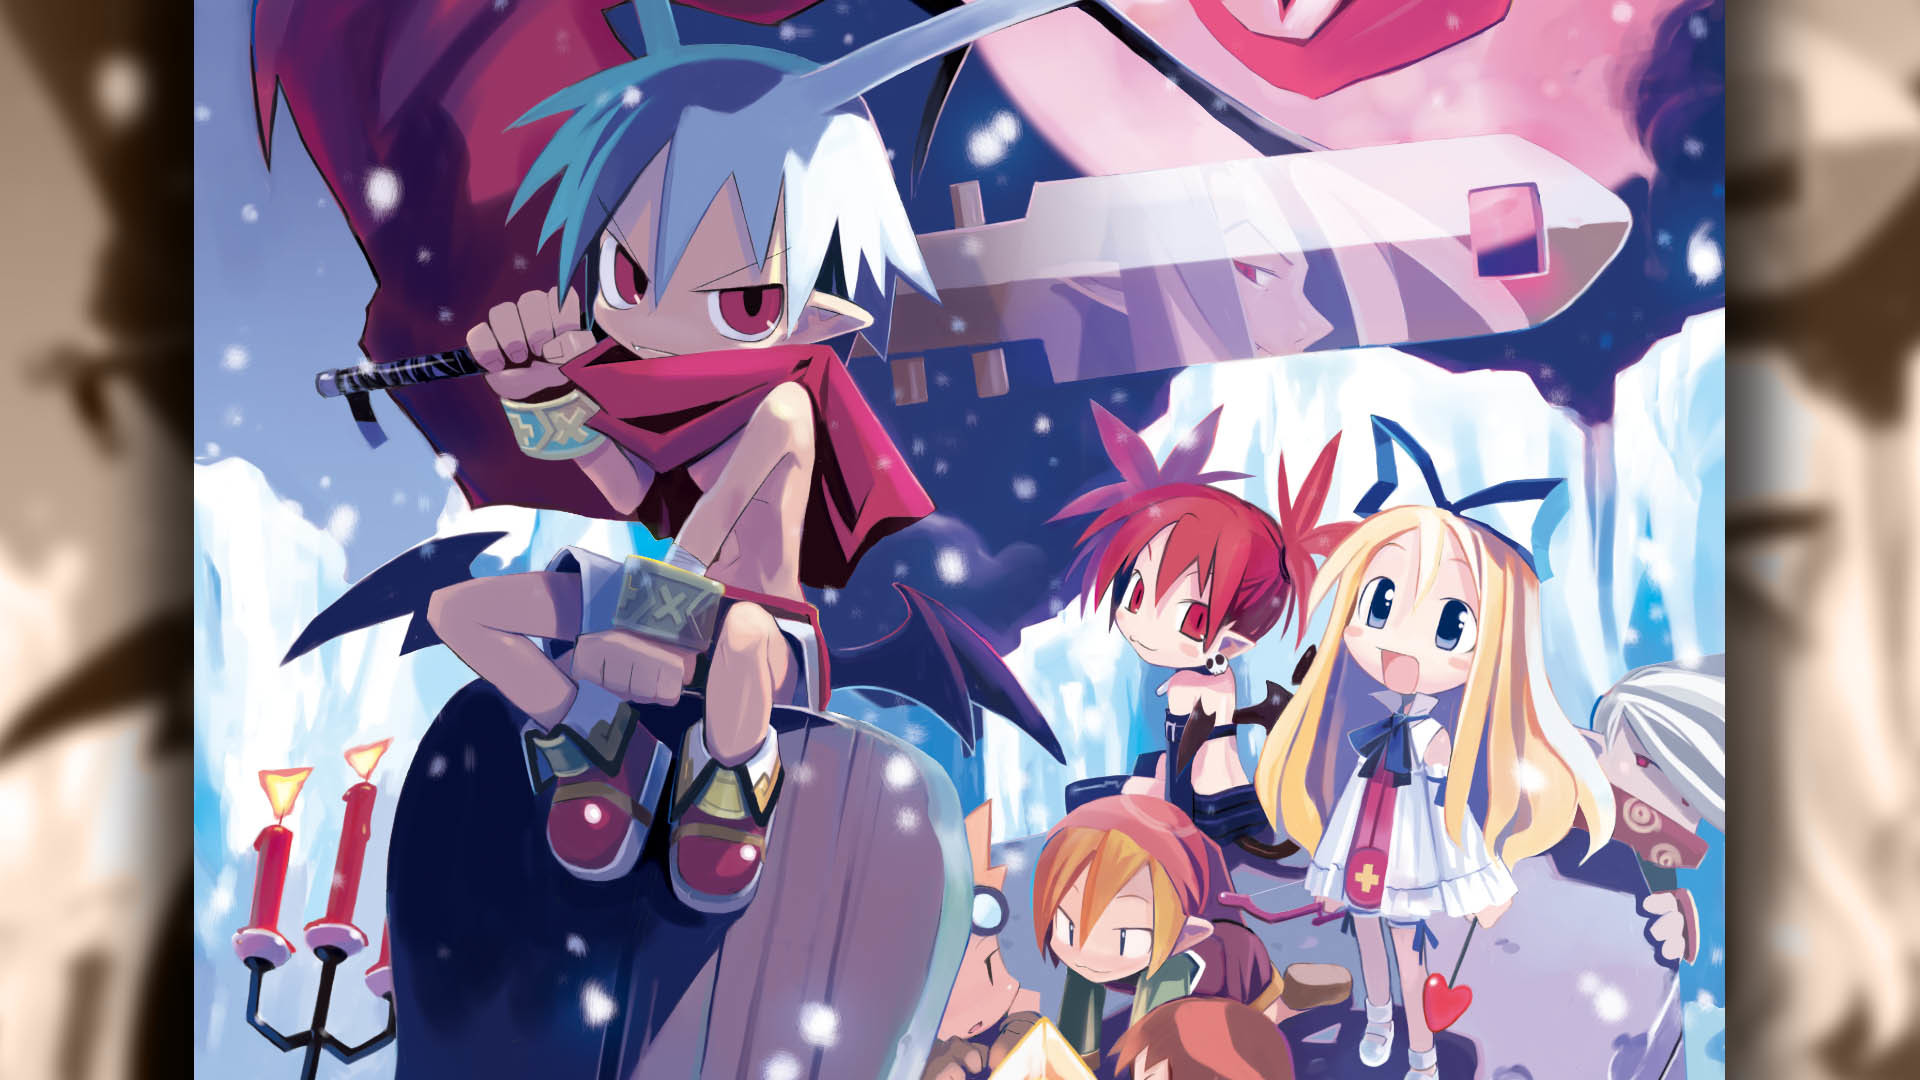 Res: 1920x1080, Disgaea PC Wallpaper 006 – Laharl